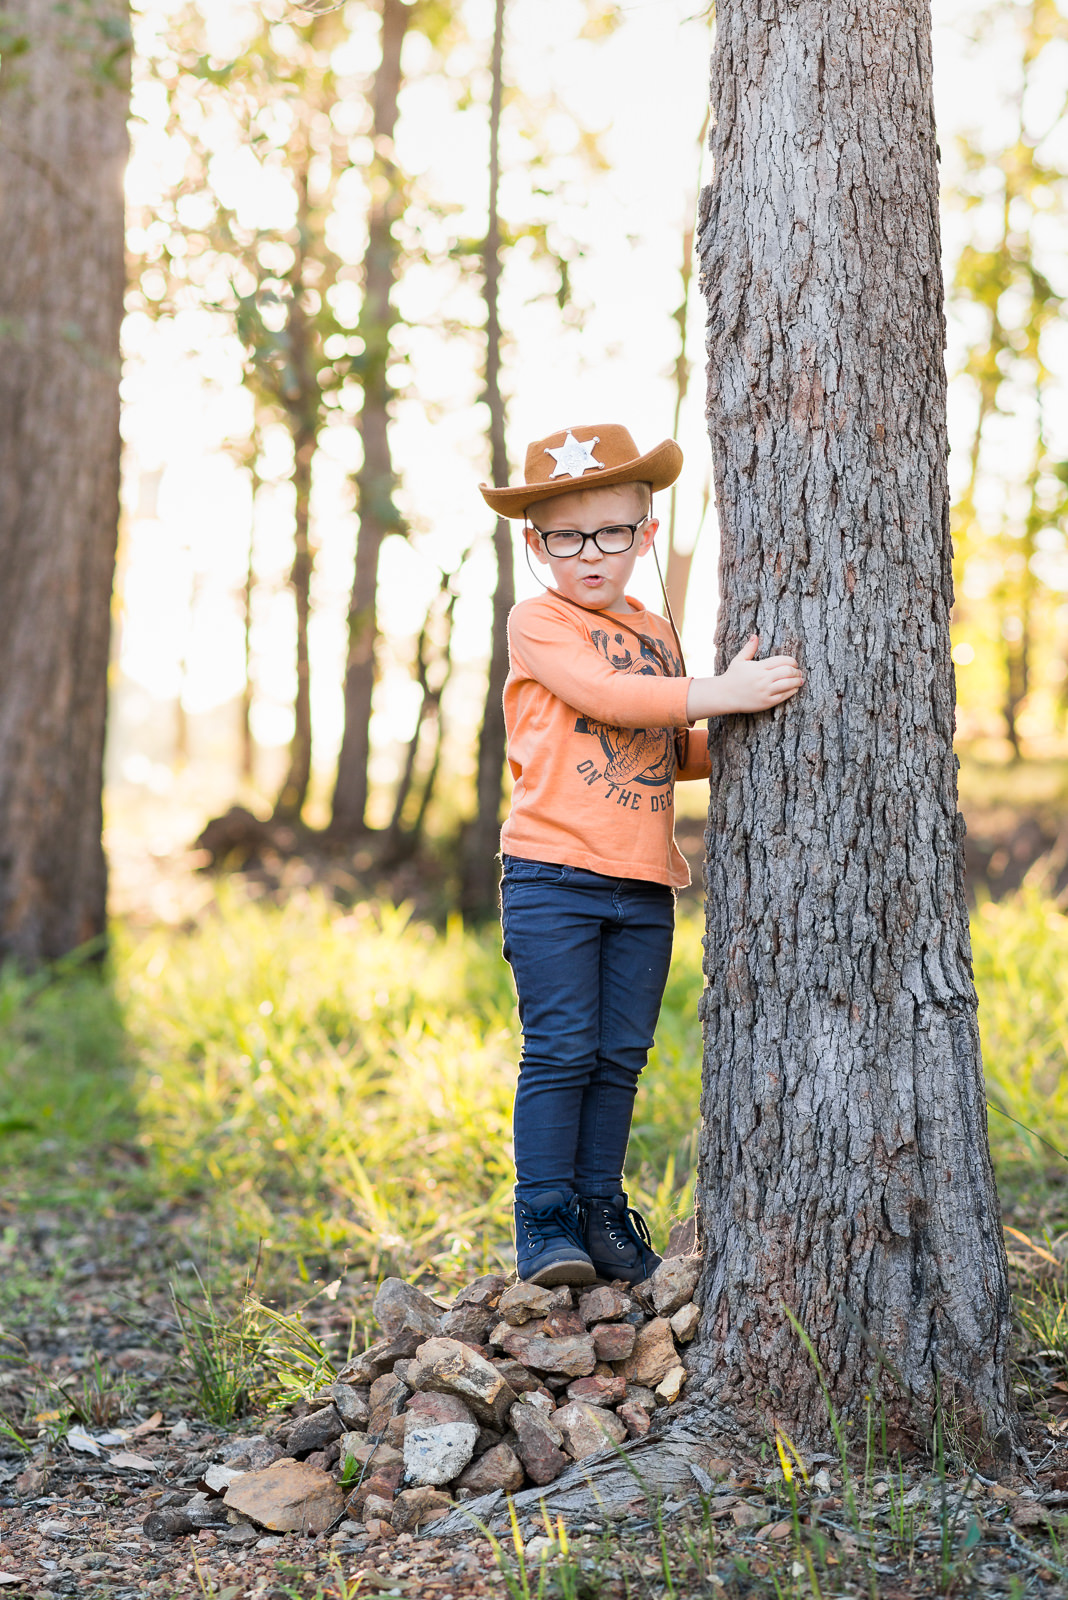 Portrait of little cowboy standing against a tree in a bushland rural setting in elimbah